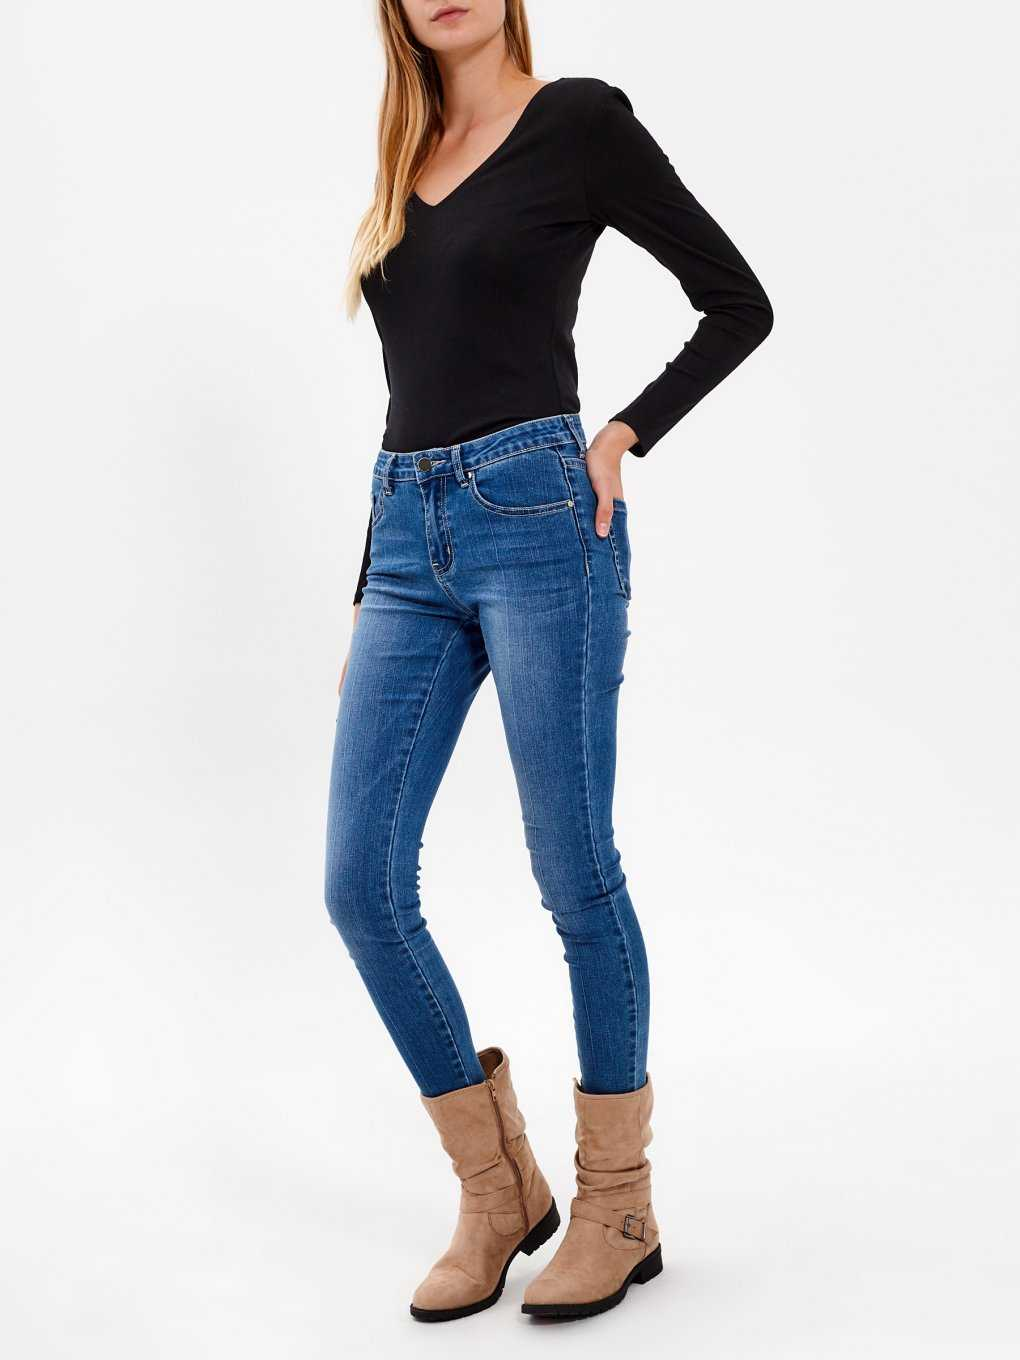 BASIC V-NECK RIB-KNIT BODYSUIT